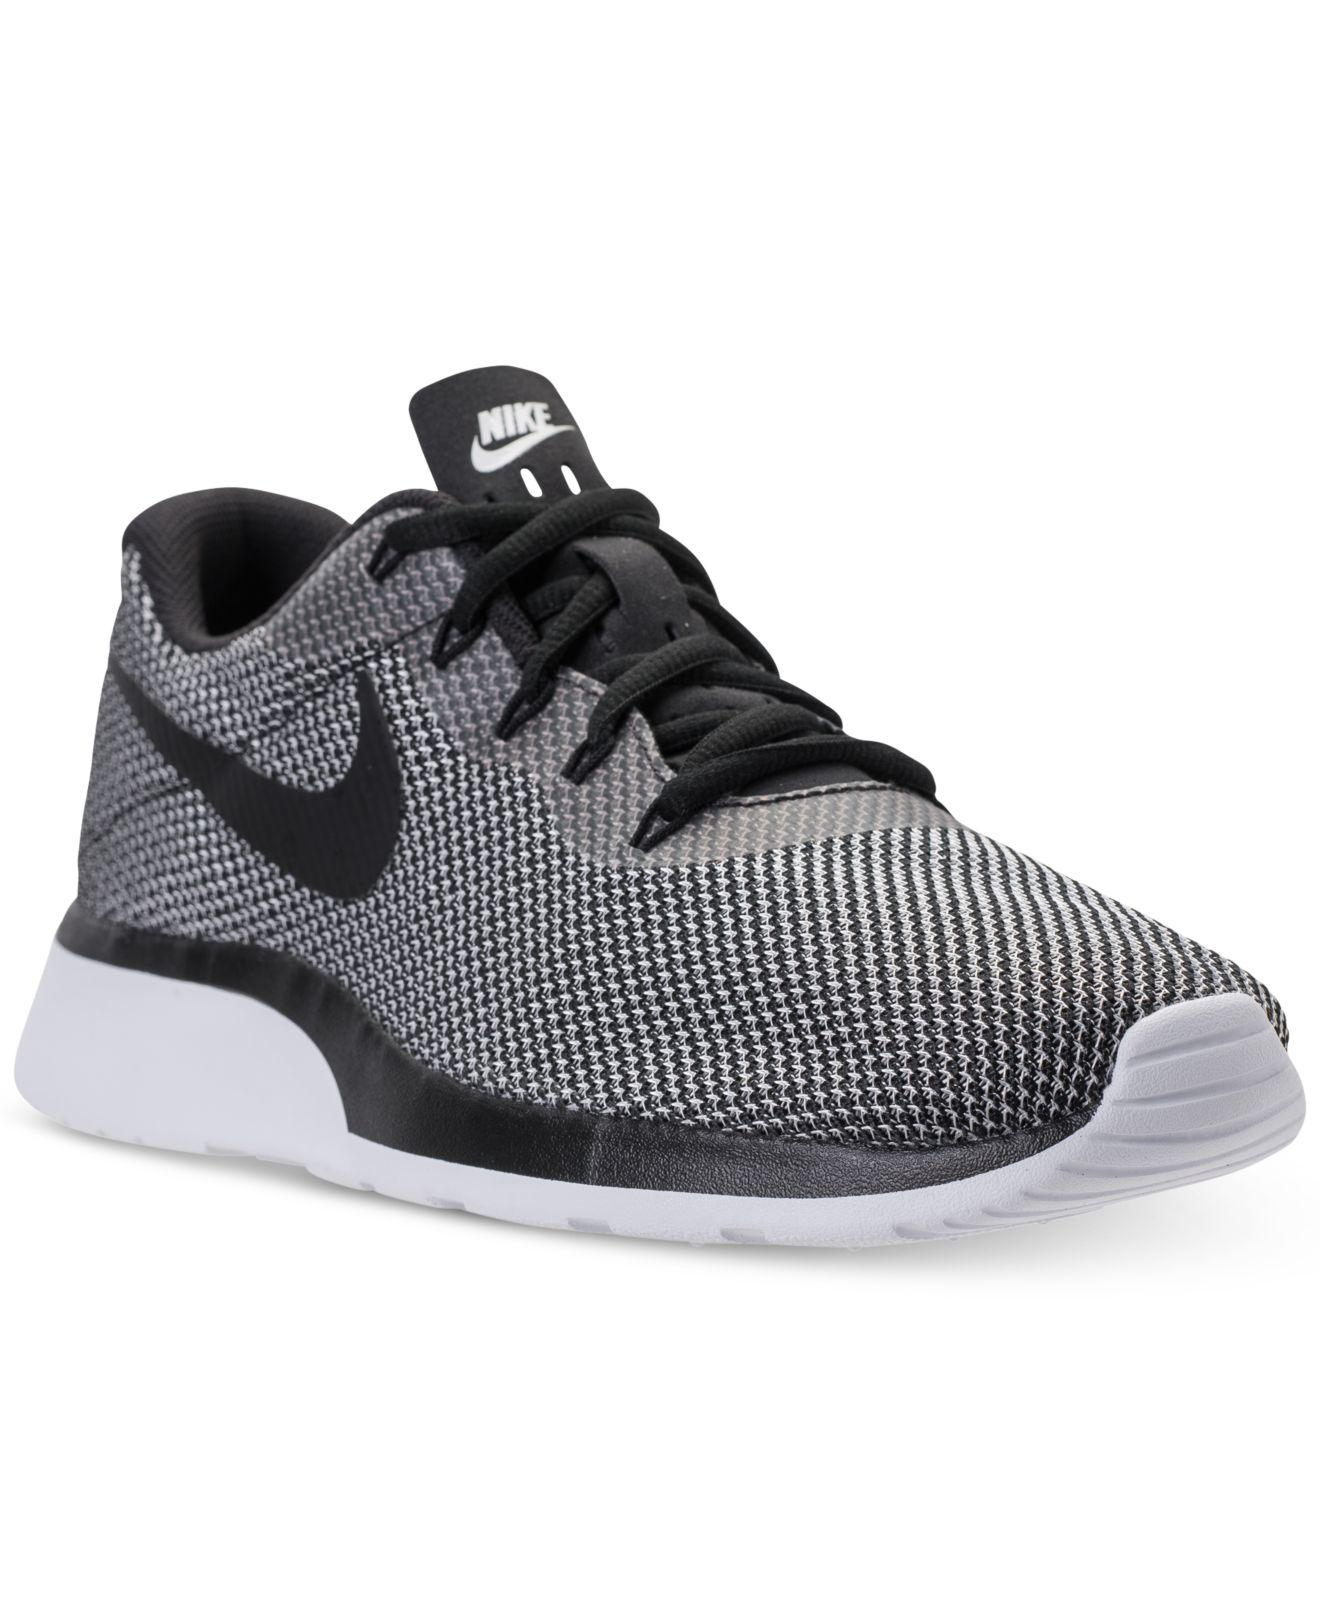 Mens Tanjun Racer Low-Top Sneakers Nike PiE5UT4